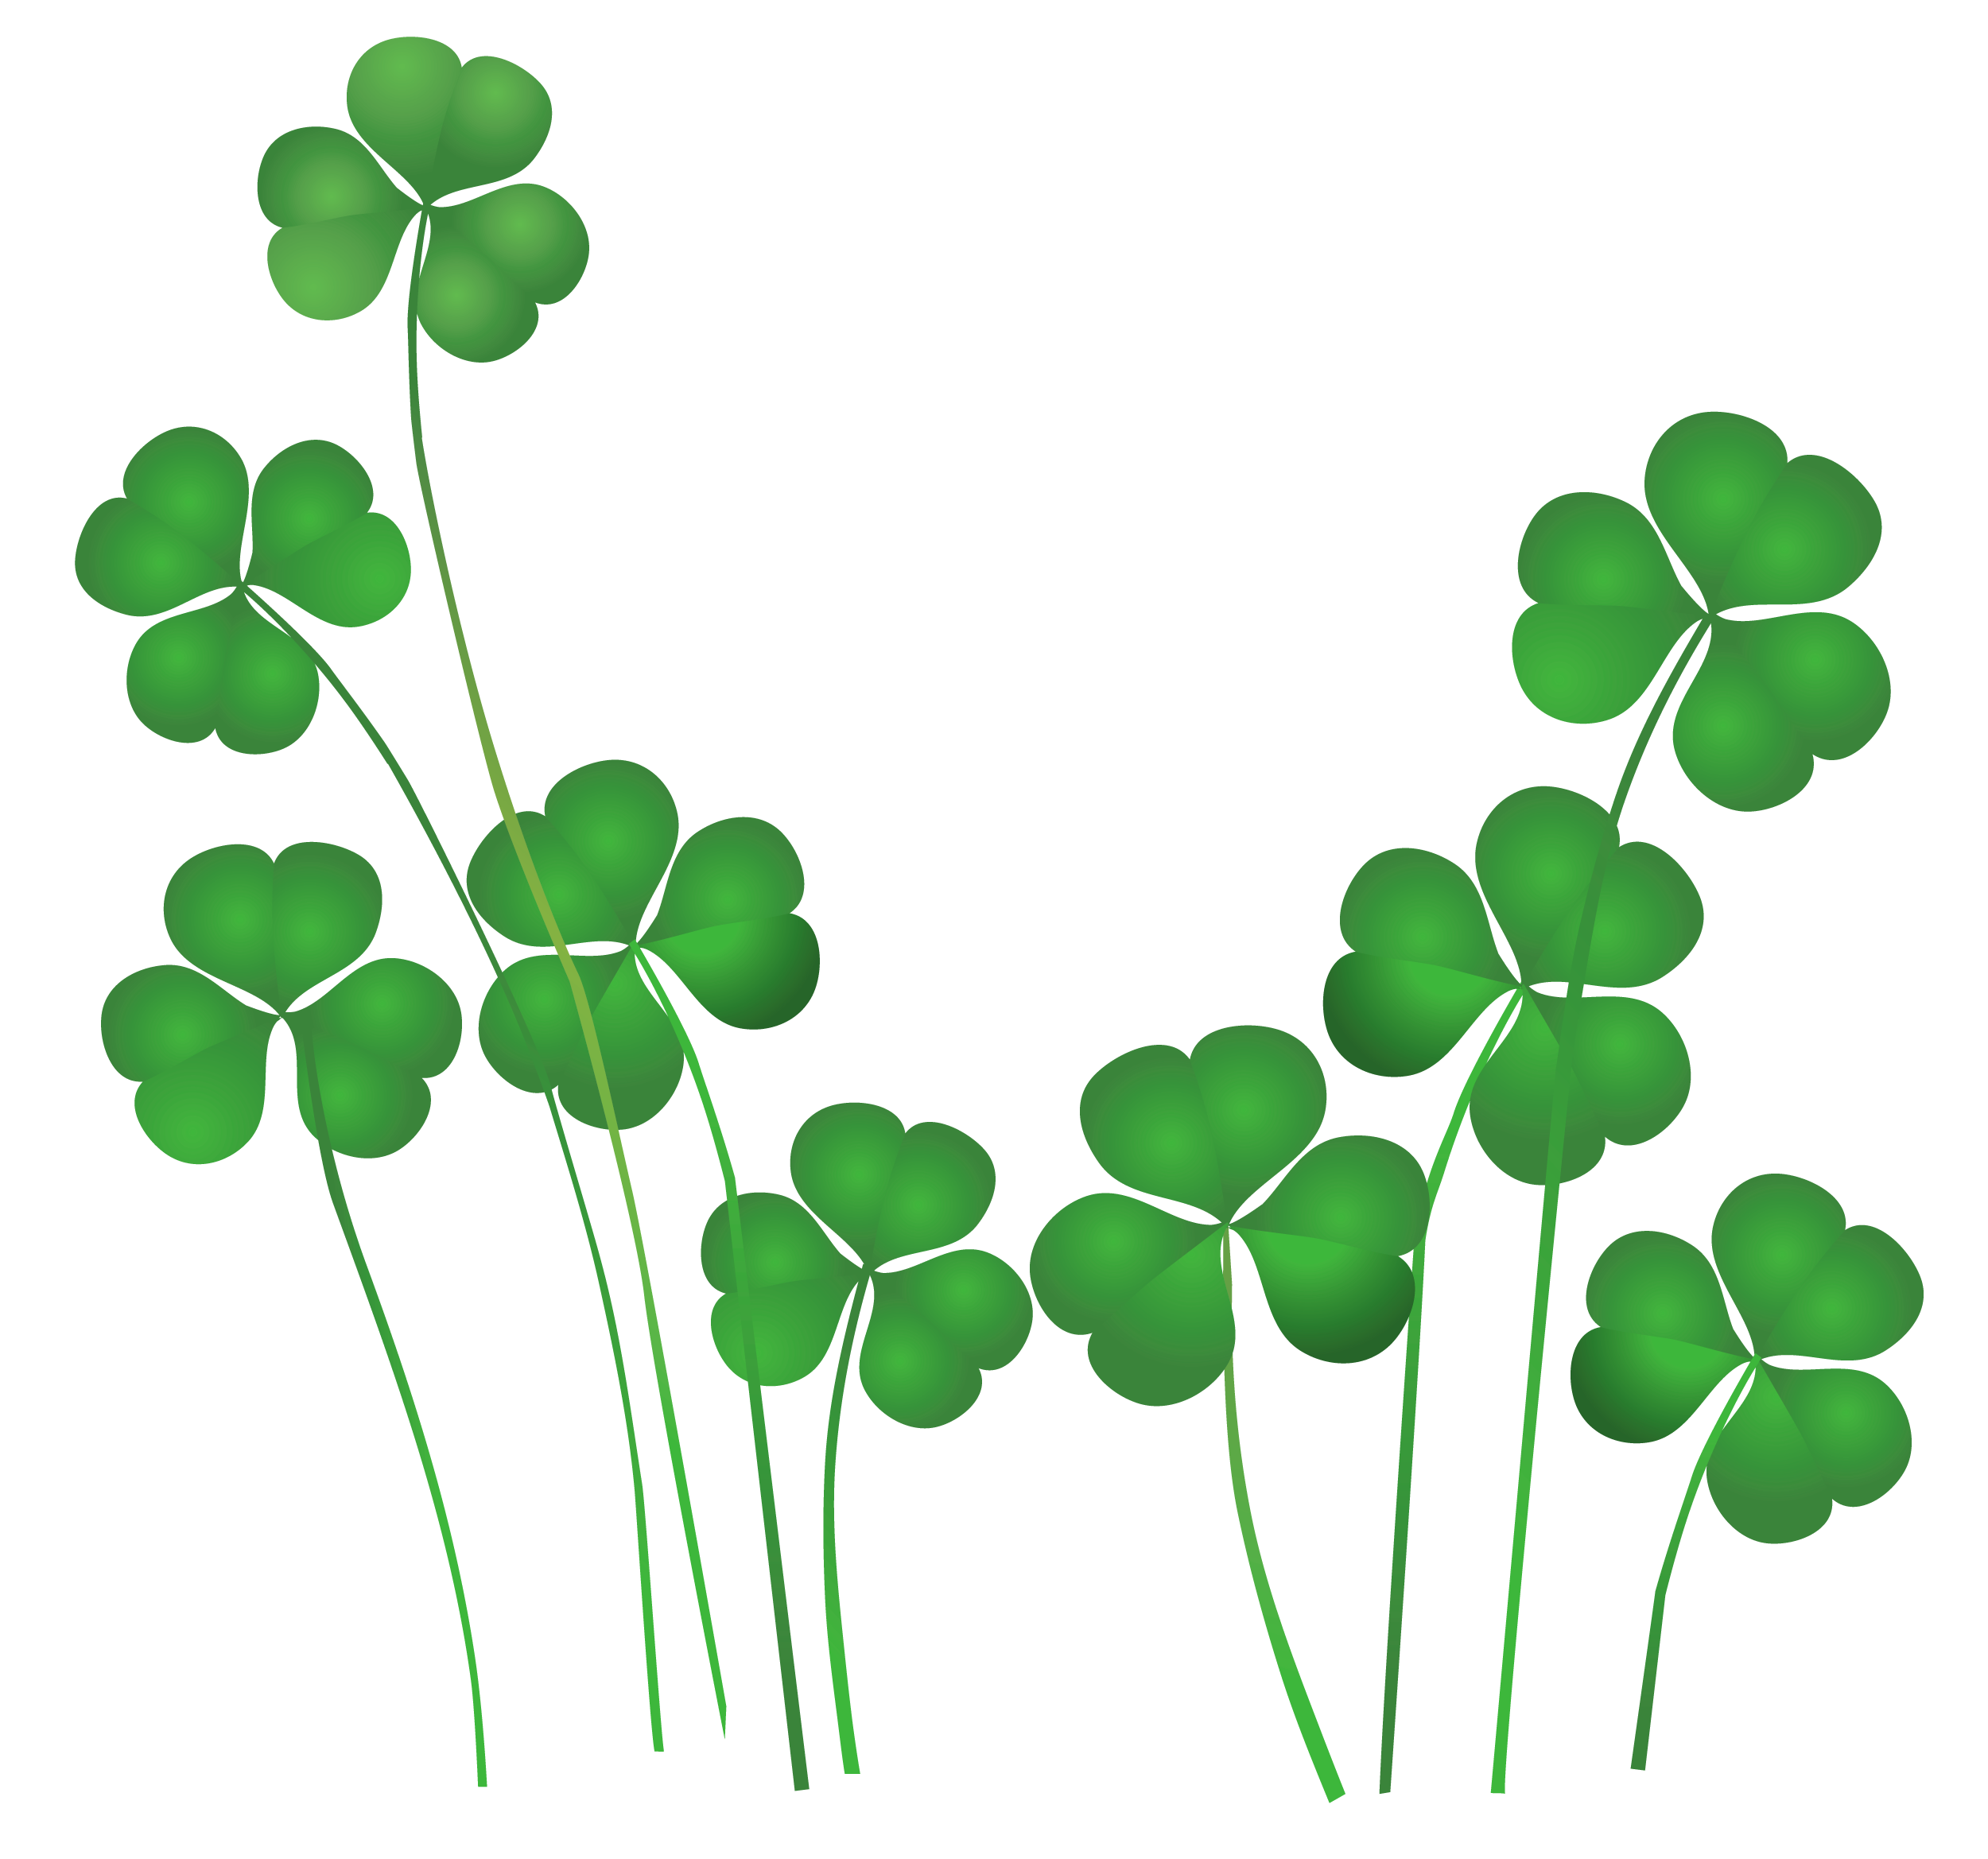 Pin by Susan Sless on st patricks Day.